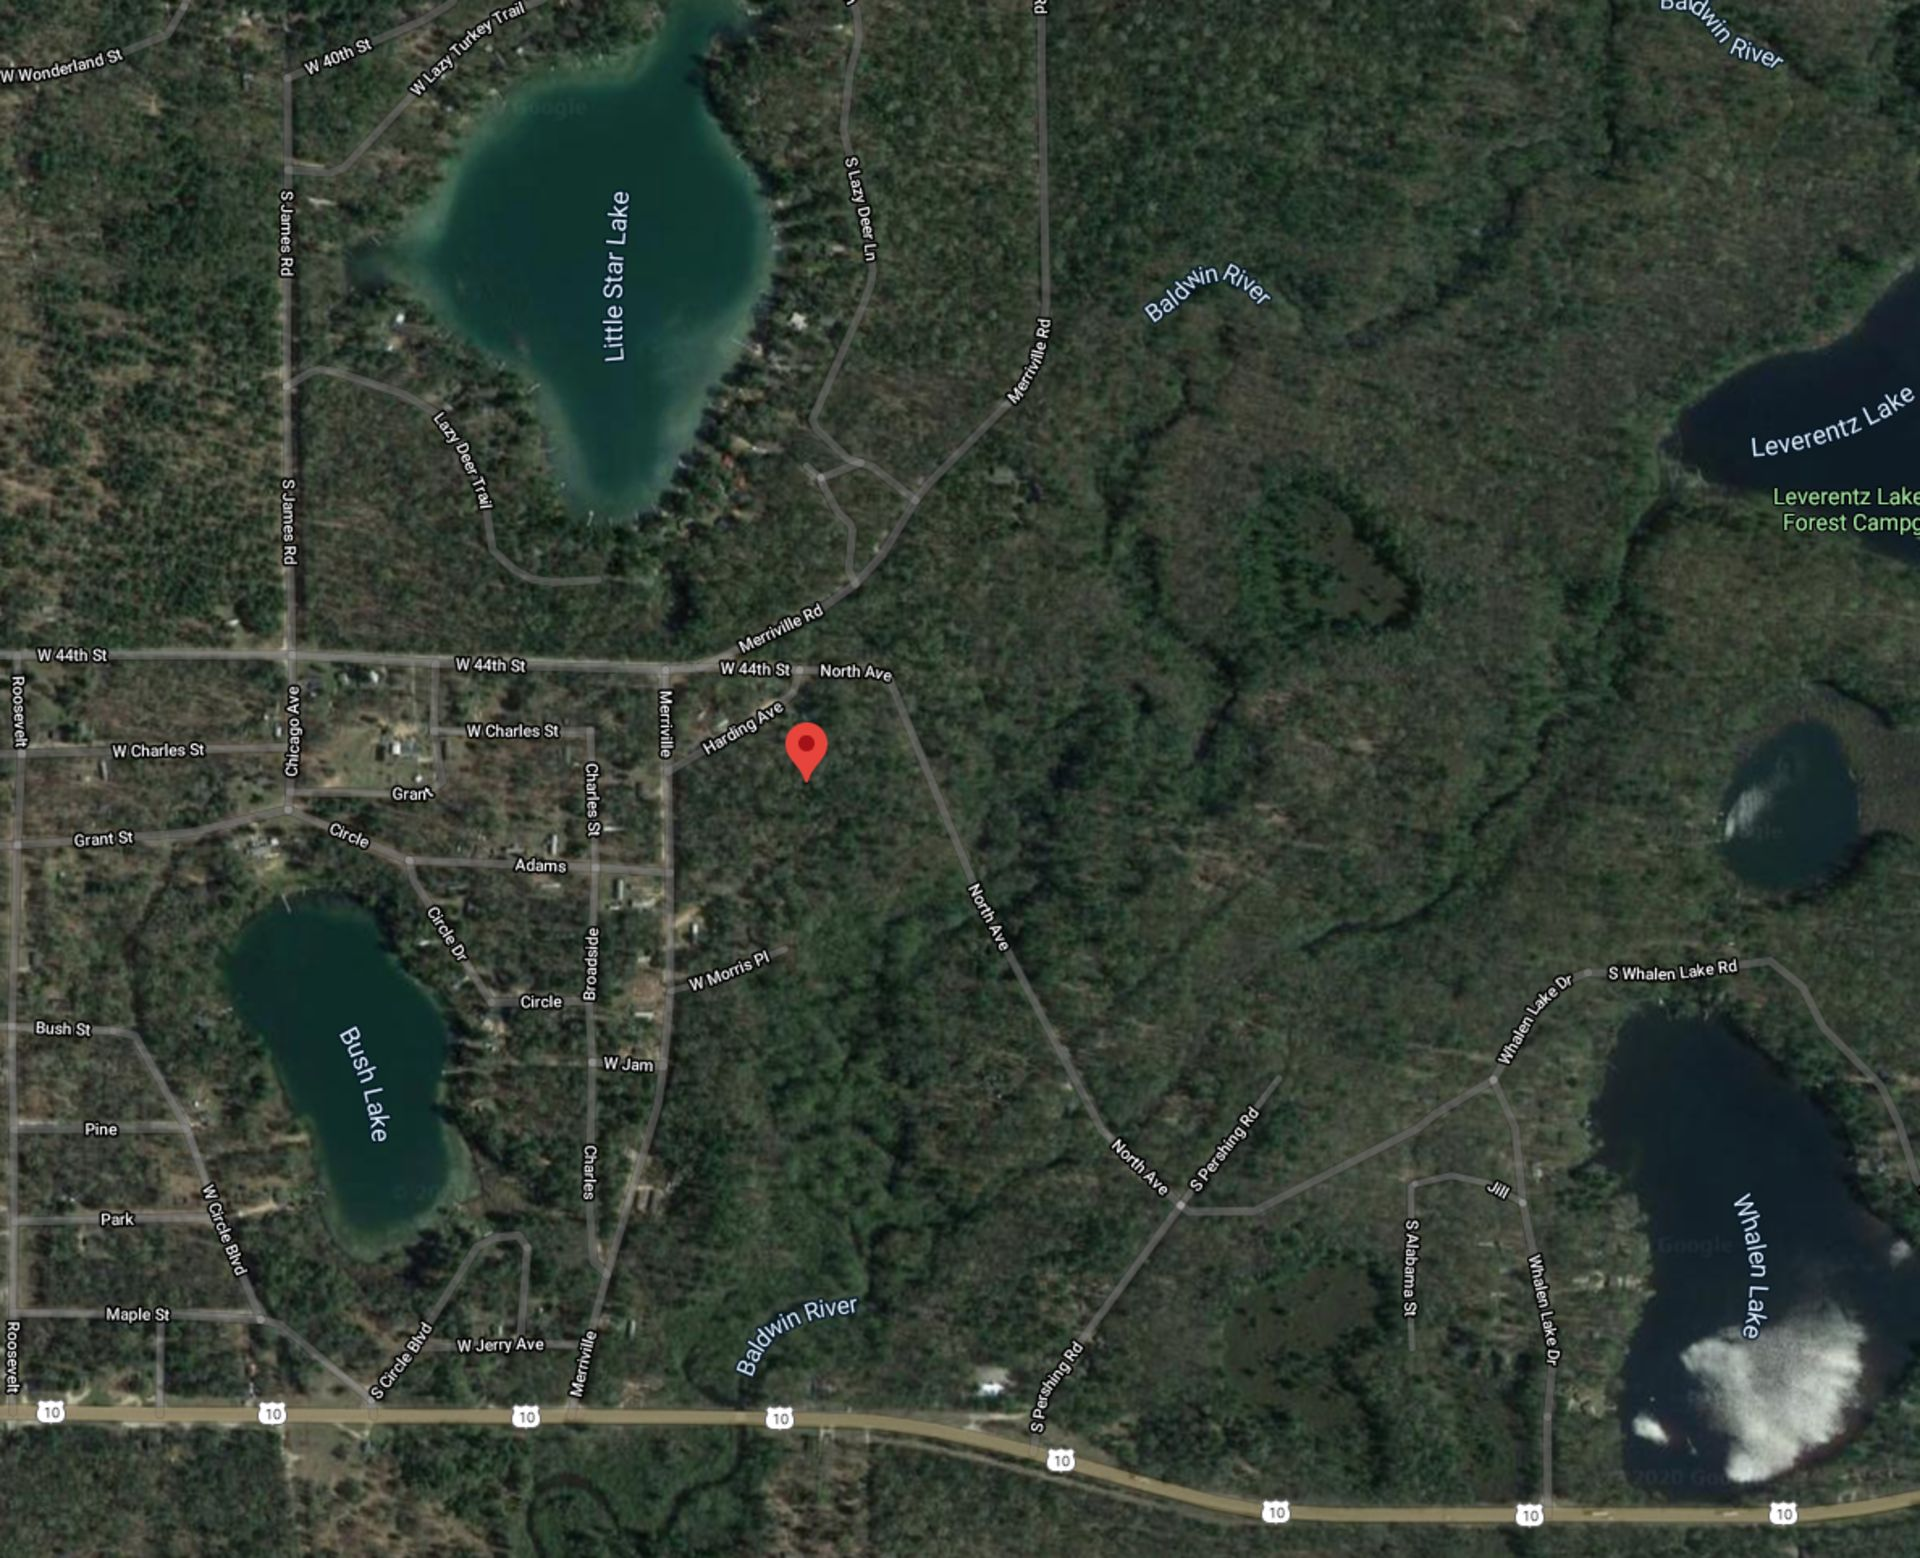 Own Land in Lake County. Michigan's Recreational Outdoor Paradise! - Image 4 of 6